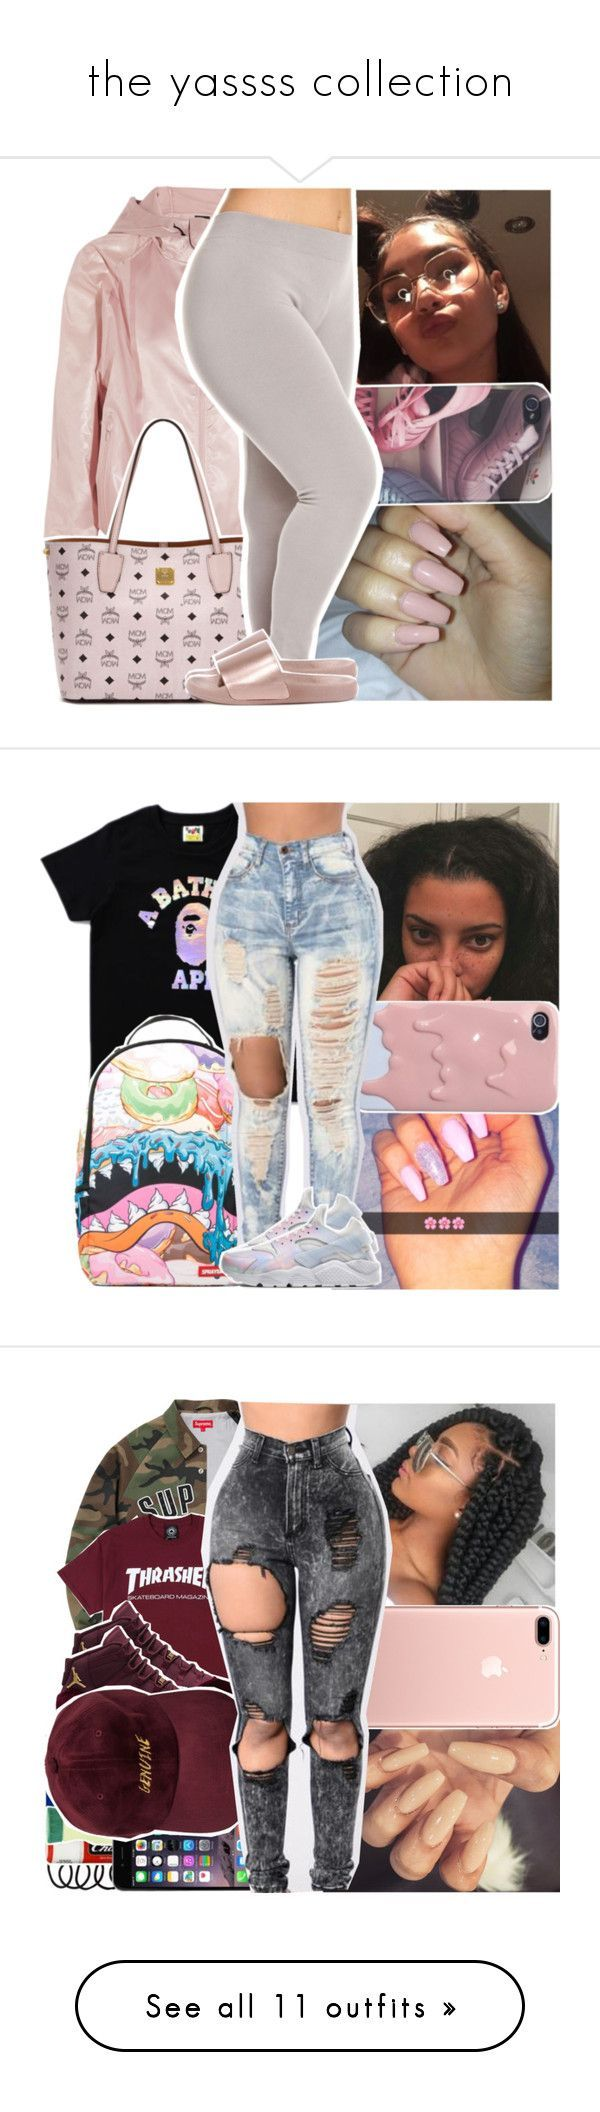 """the yassss collection"" by pinksemia ❤ liked on Polyvore featuring NIKE, MCM, Bamboo, Sprayground, Casetify, adidas Originals, MICHAEL Michael Kors, UGG Australia, Furla and adidas"